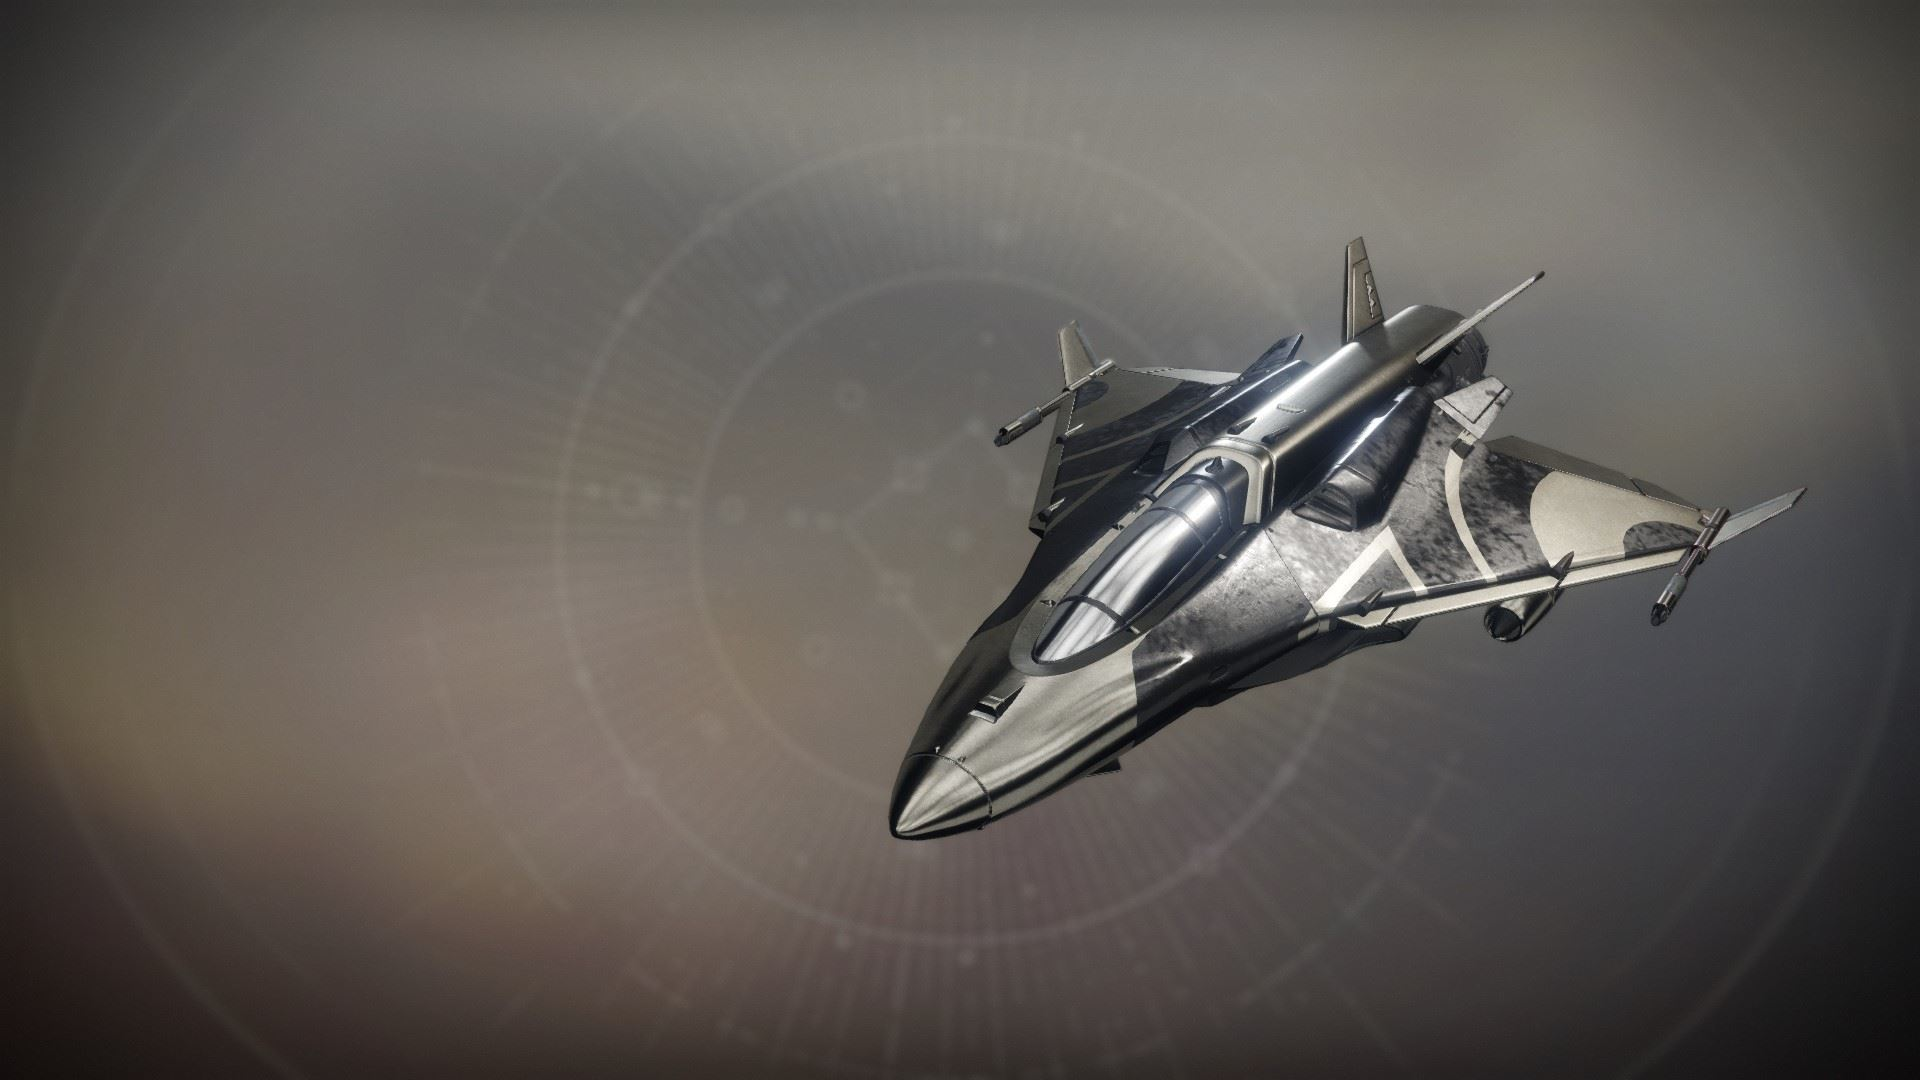 An in-game render of the Esfera Triumph.